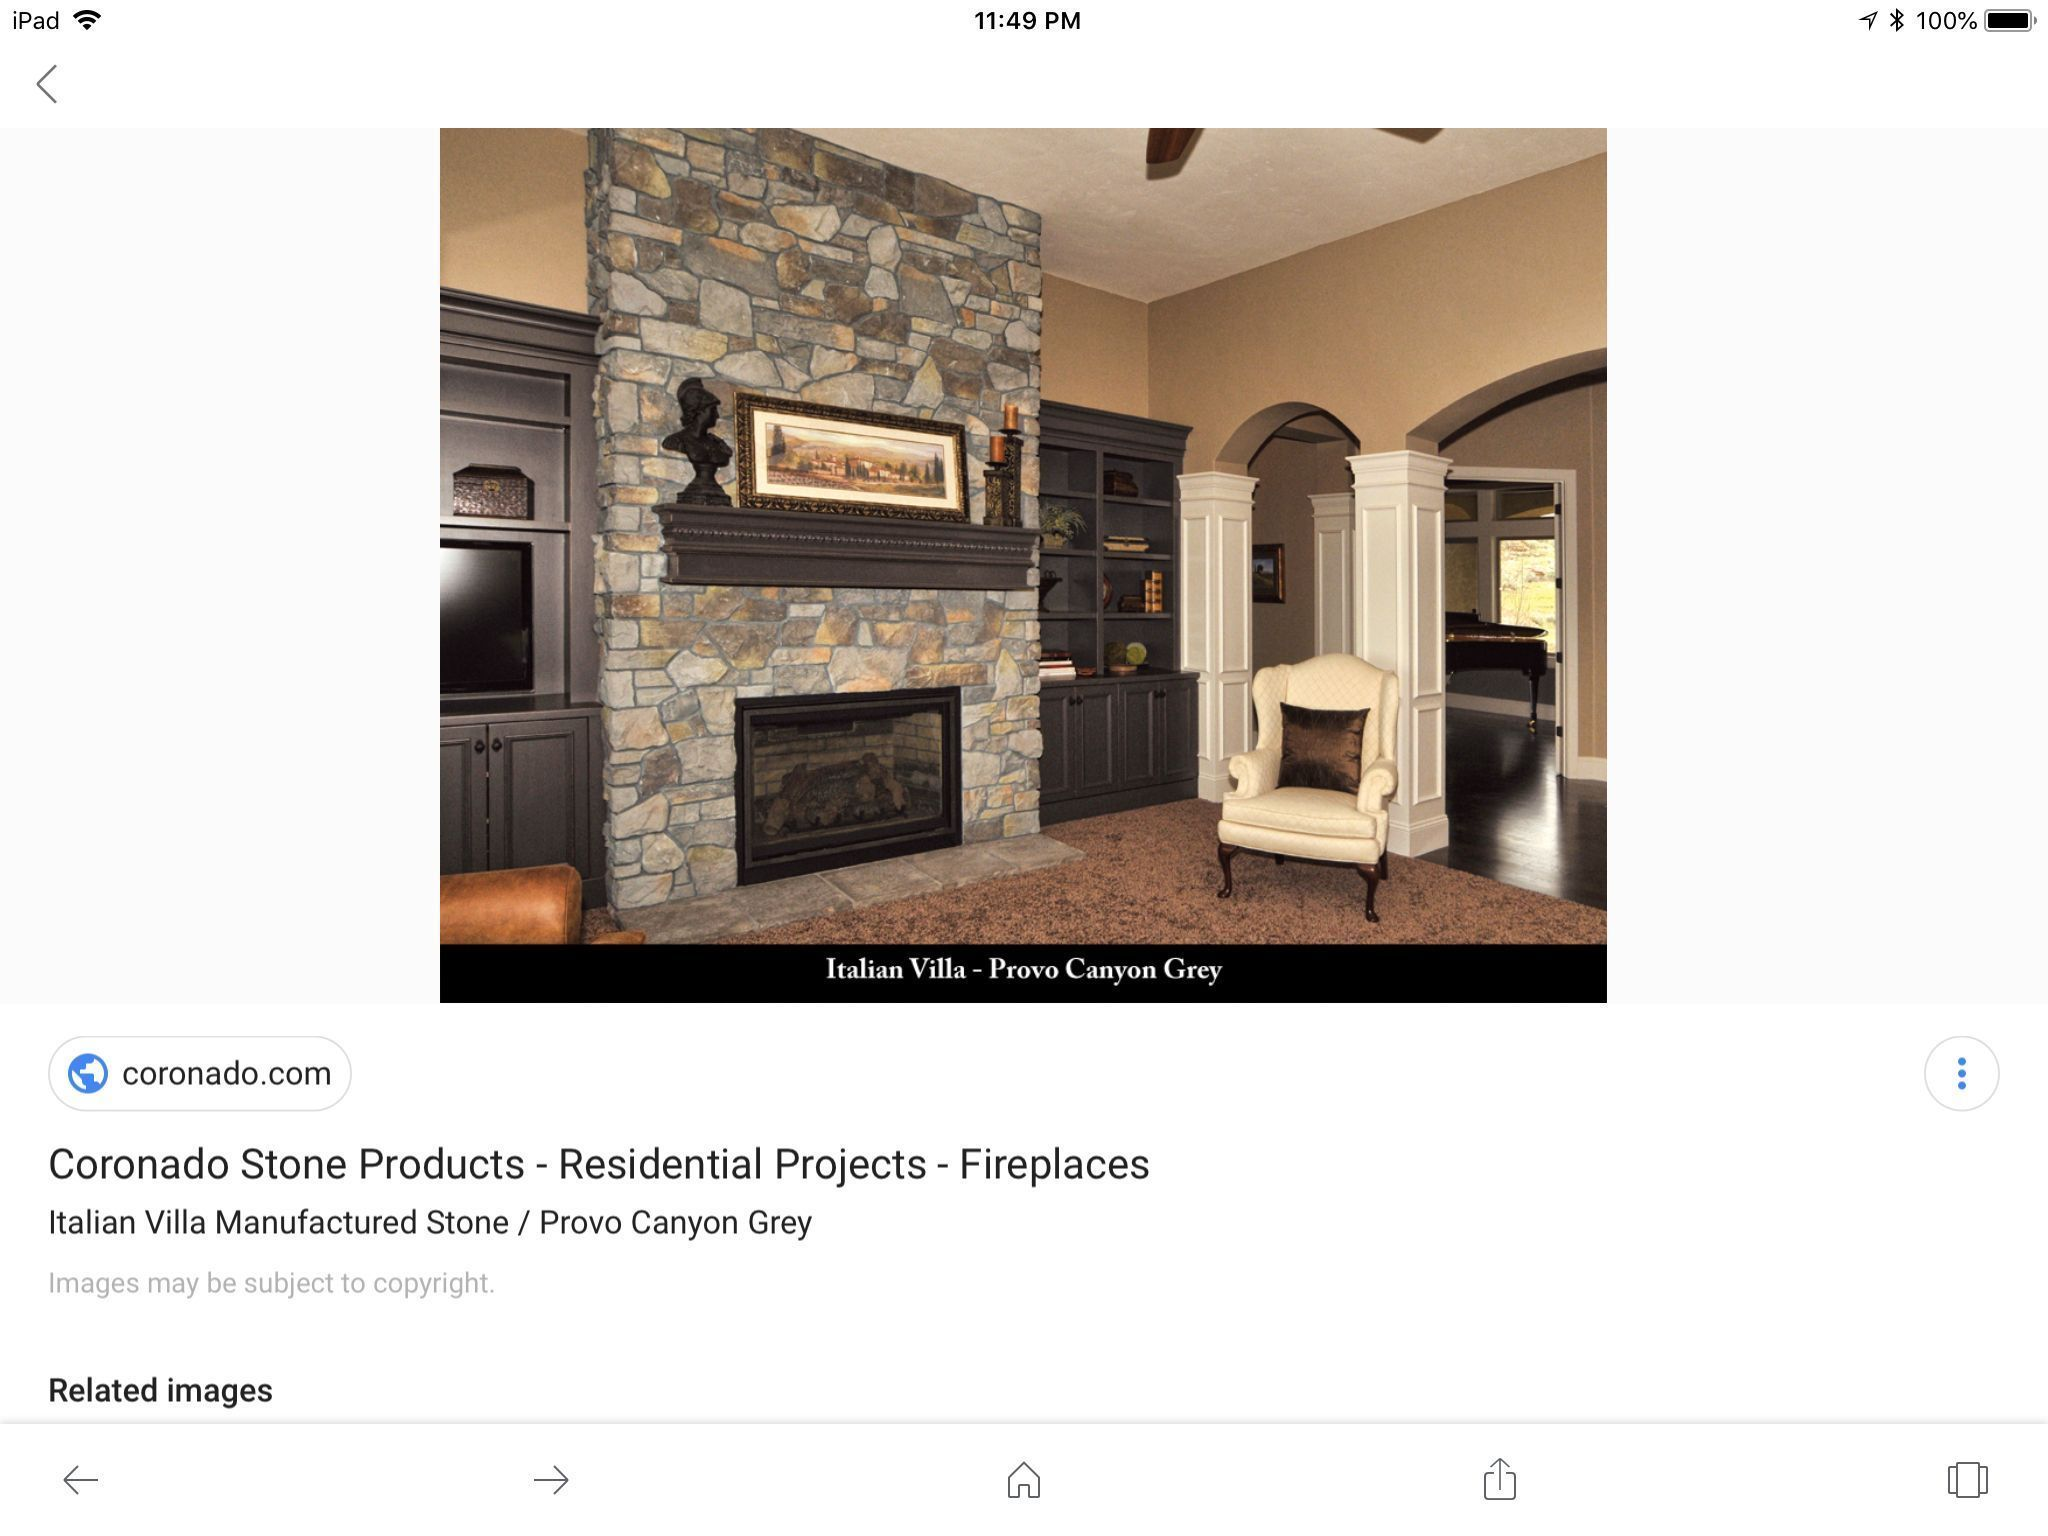 Best Pic tall Fireplace Remodel Popular  Terrific Pictures Fireplace Hearth height Thoughts  5 Mind Blowing Useful Ideas: Fireplace Winter S #Fireplace #Pic #Popular #Remodel #tall